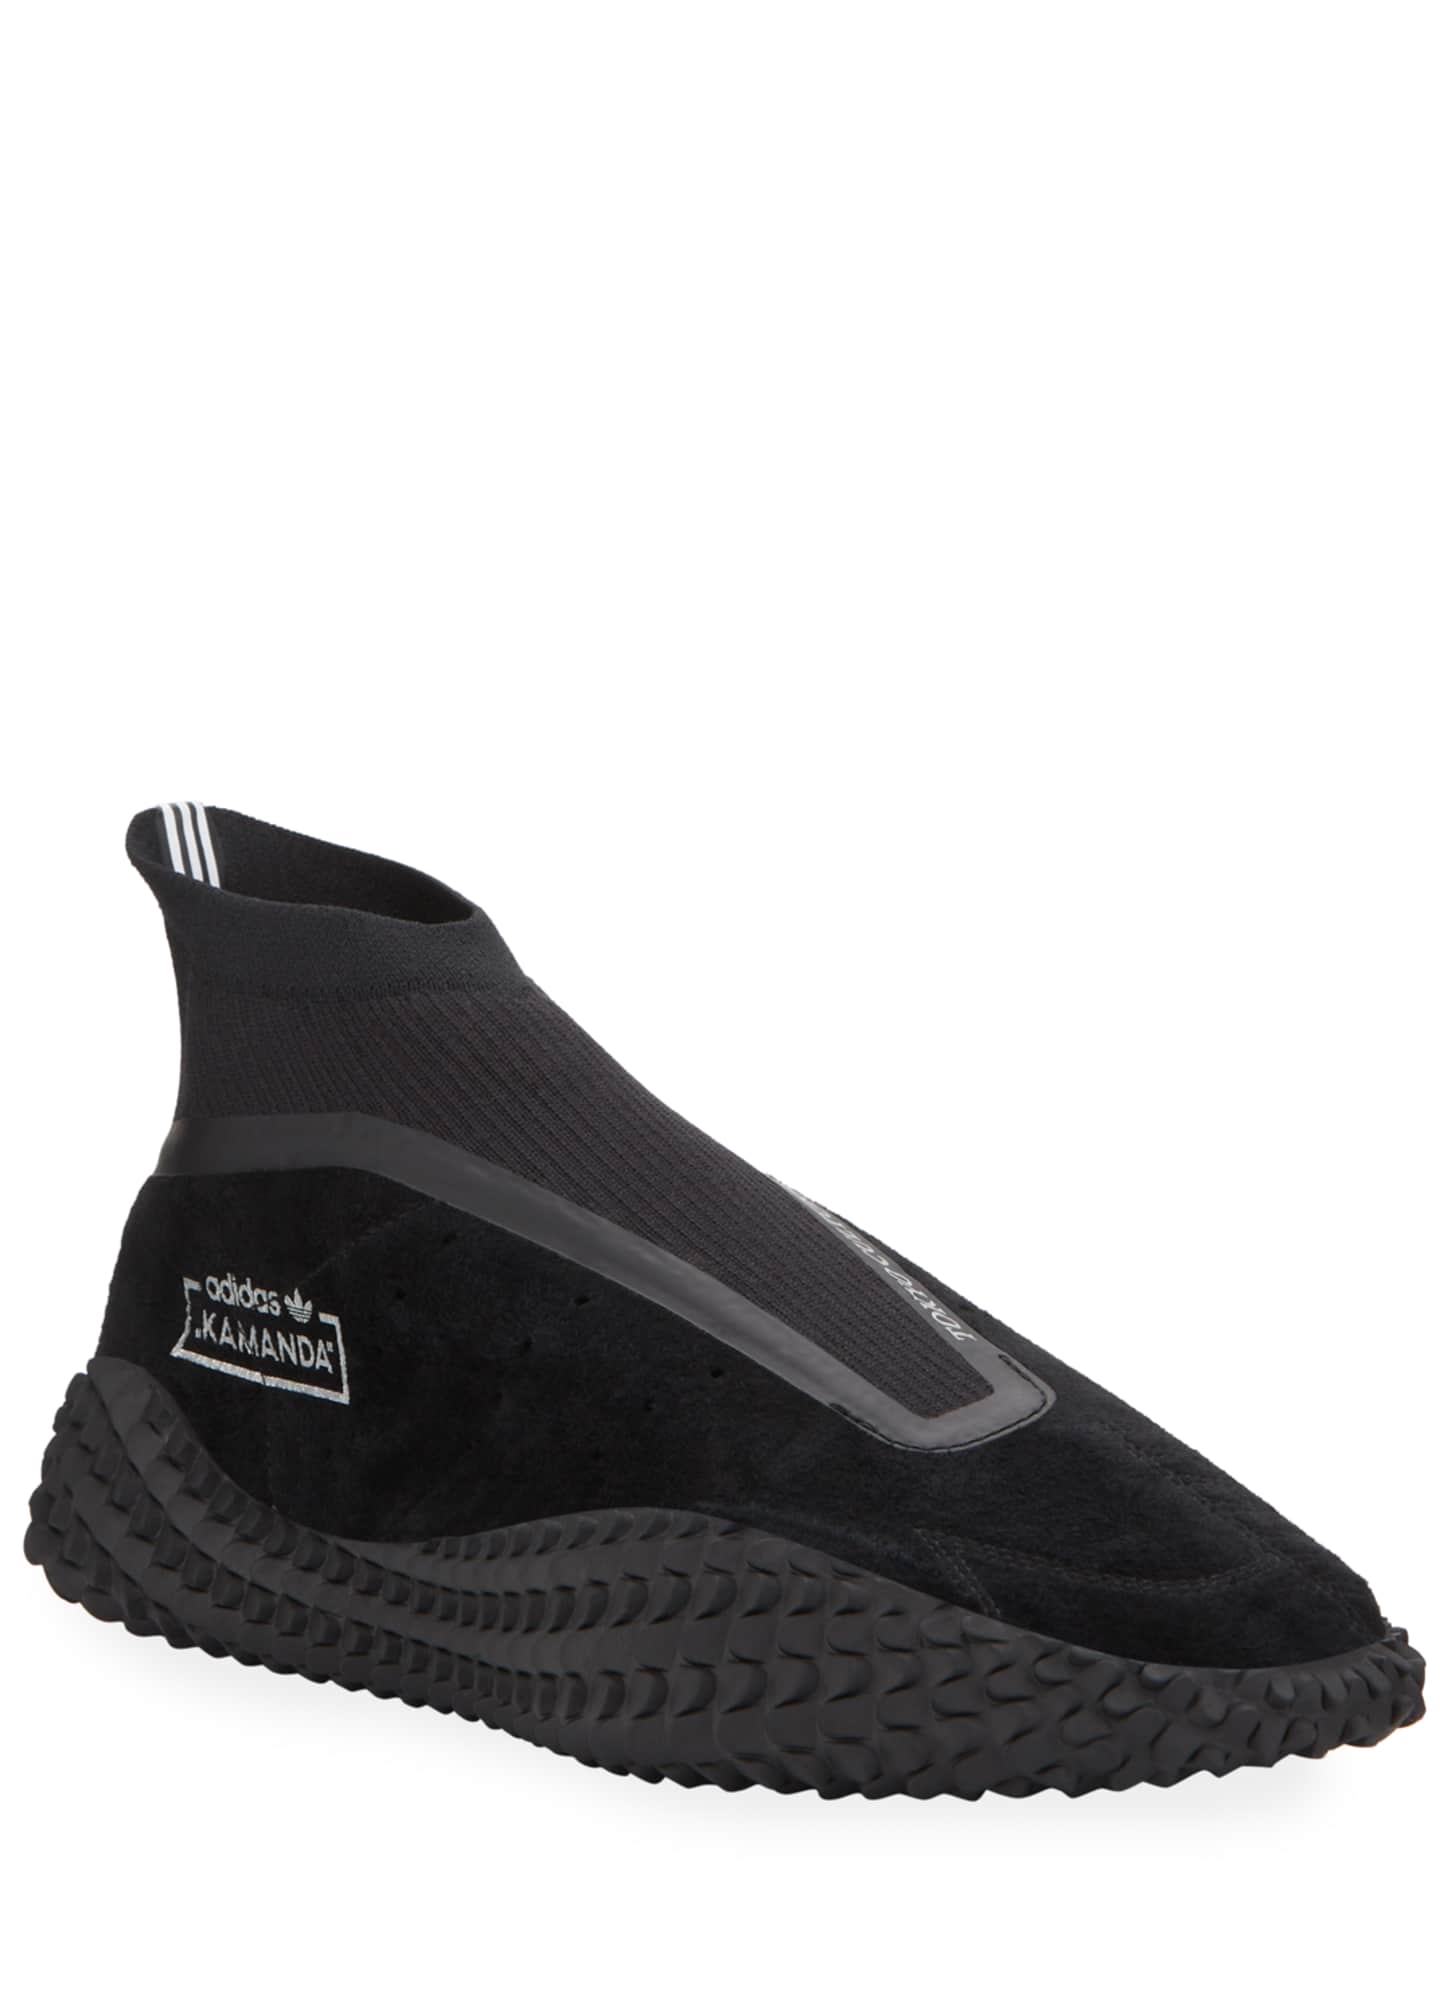 adidas x BED J.W. FORD Men's Kamanda Textured-Sole